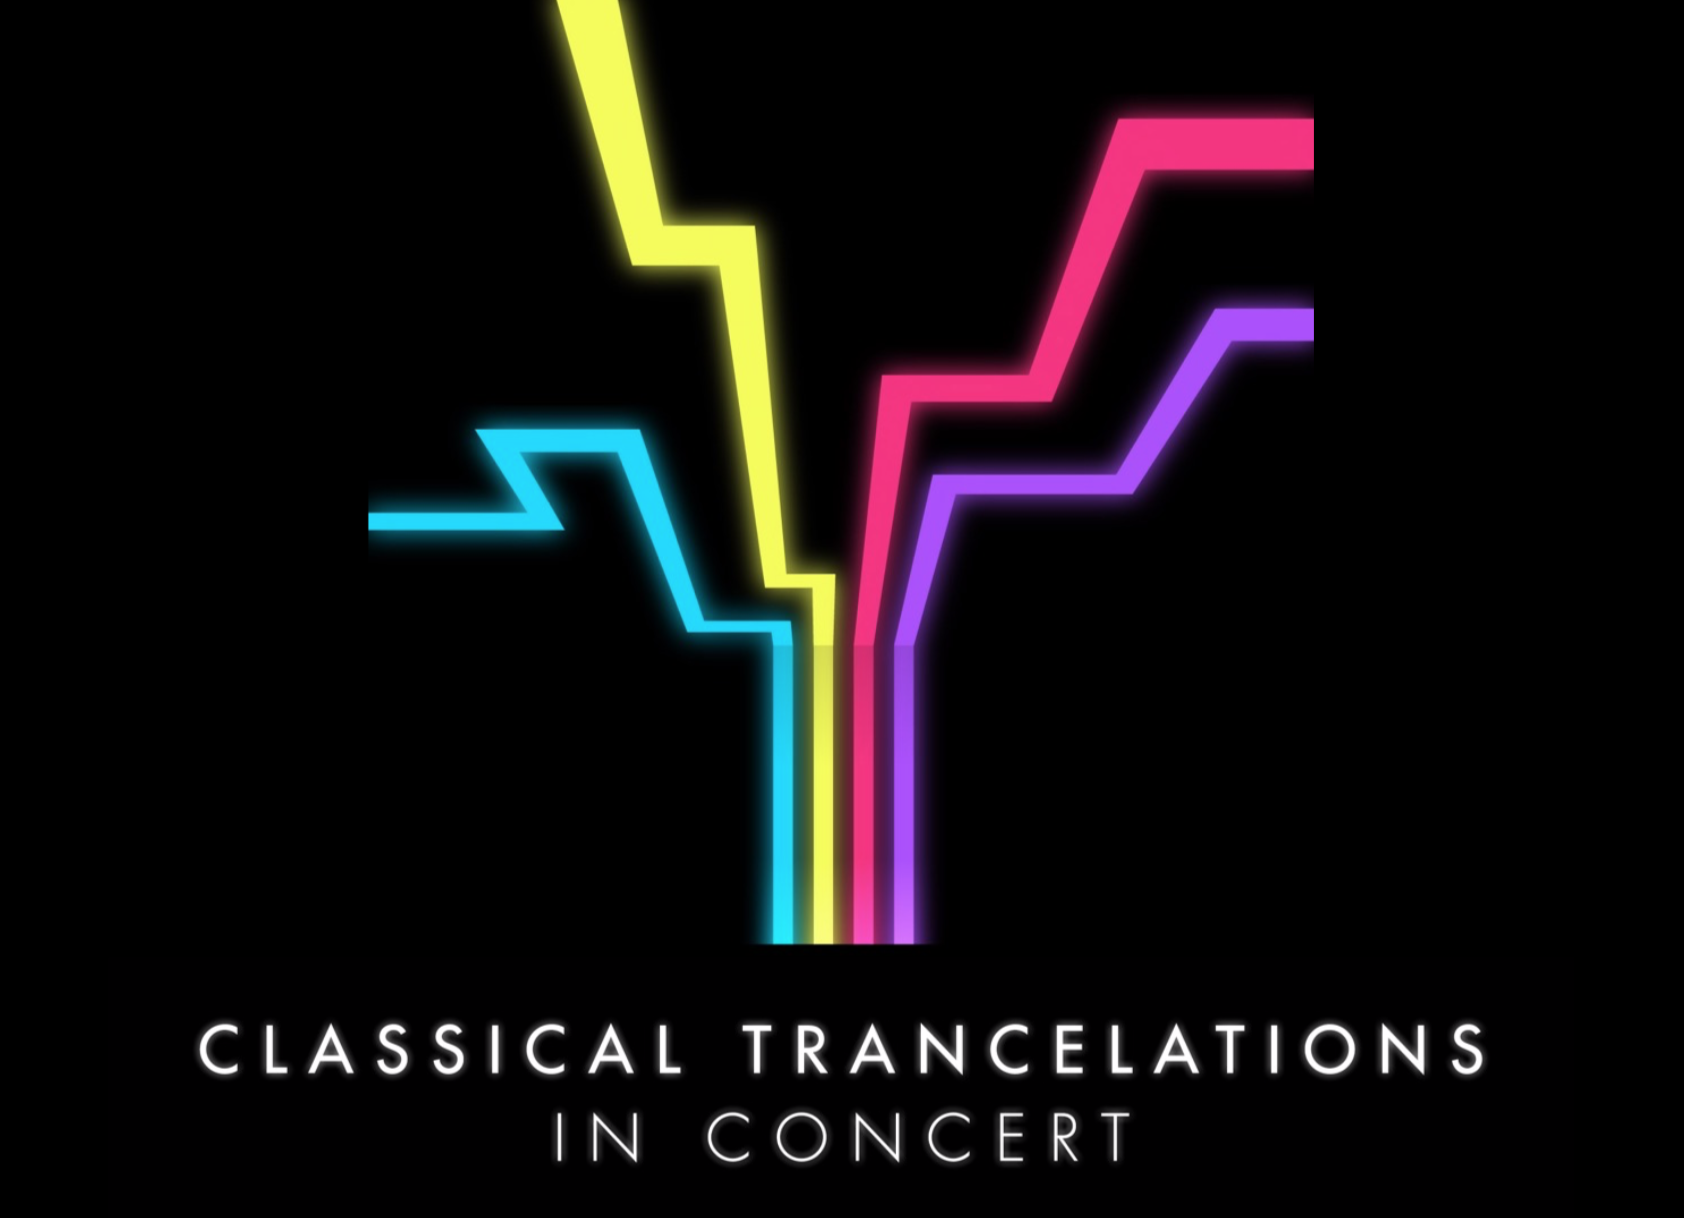 Classical Trancelations in Concert